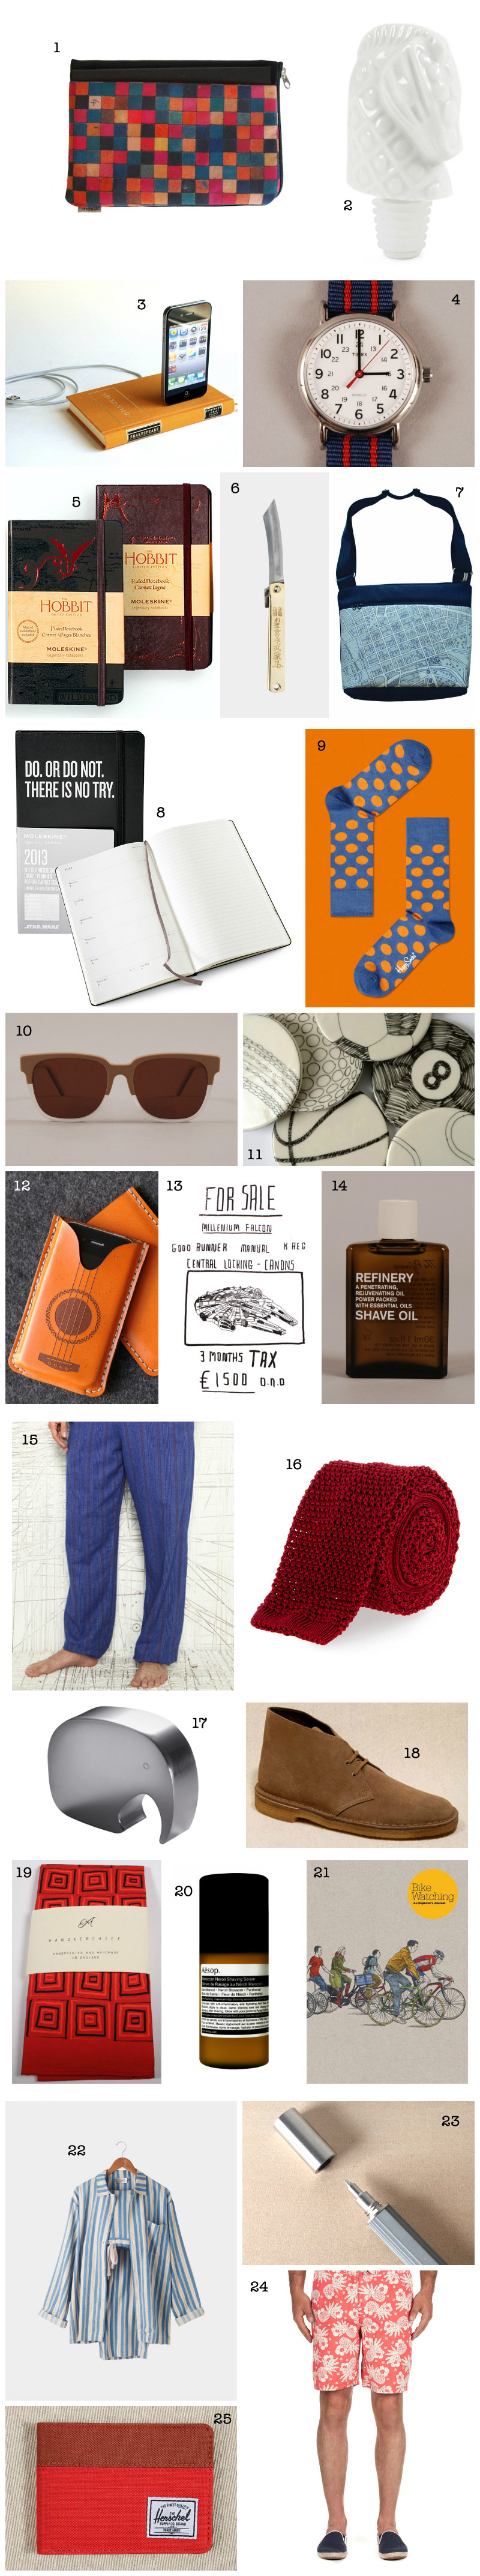 Christmas Gift List: Presents for Guys via WeeBirdy.com